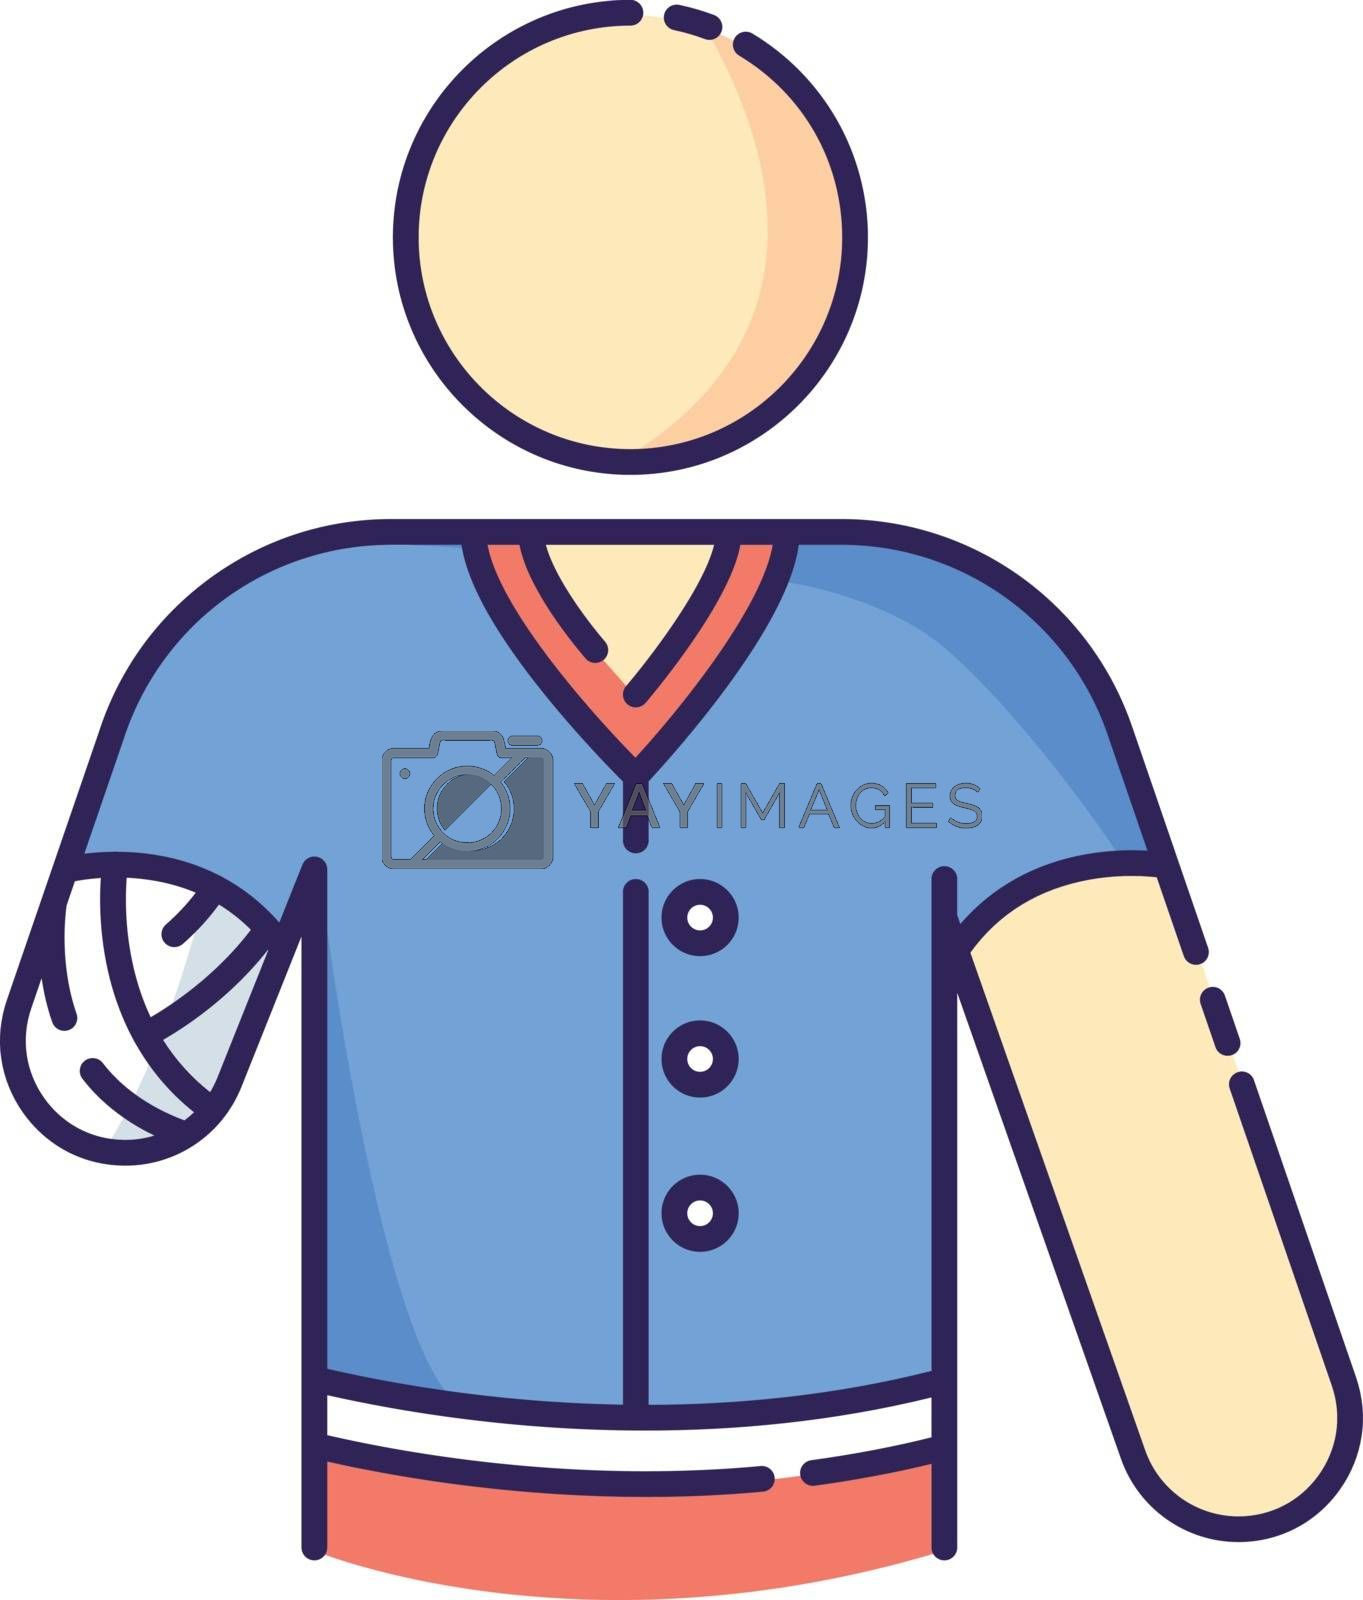 Hand amputee RGB color icon. Disabled man. Damaged hand from injury. Patient with trauma. Bandaged shoulder. Hospital aid. Medical support after accident. Isolated vector illustration